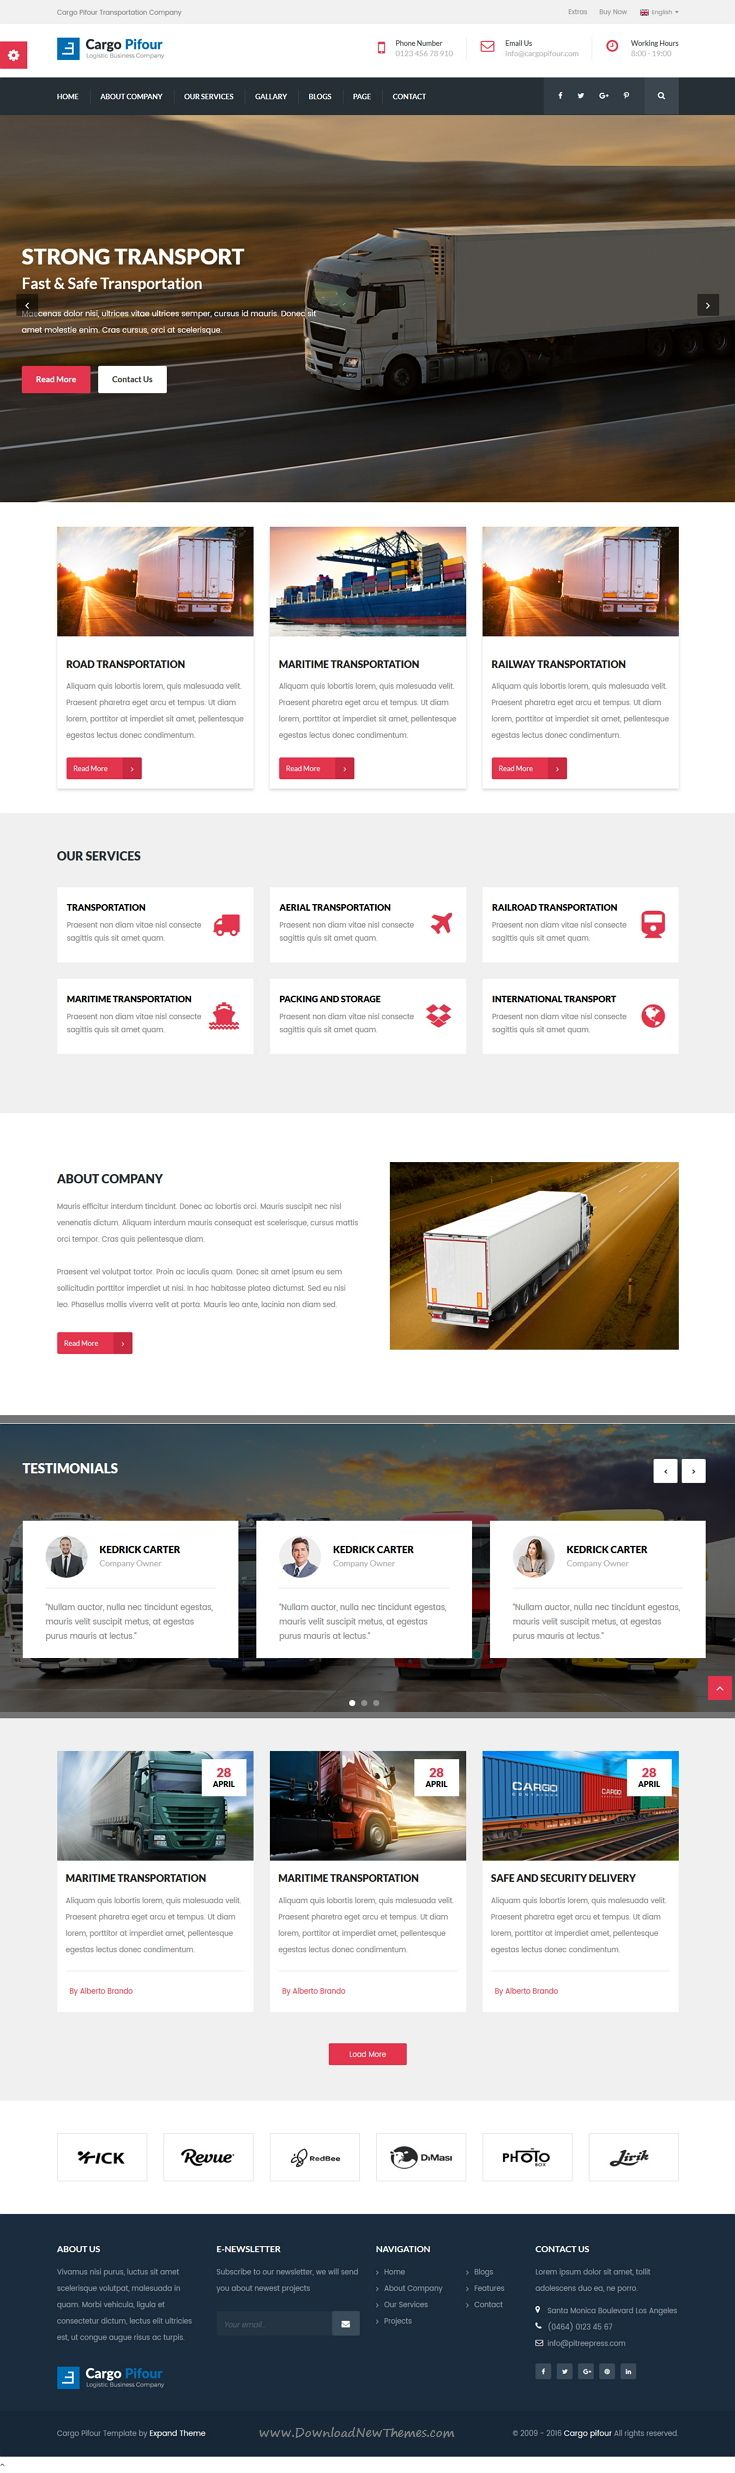 Cargo Pifour is wonderful Bootstrap HTML5 template for #logistics, #transportation, #trucking, and cargo companies website. Download Now!